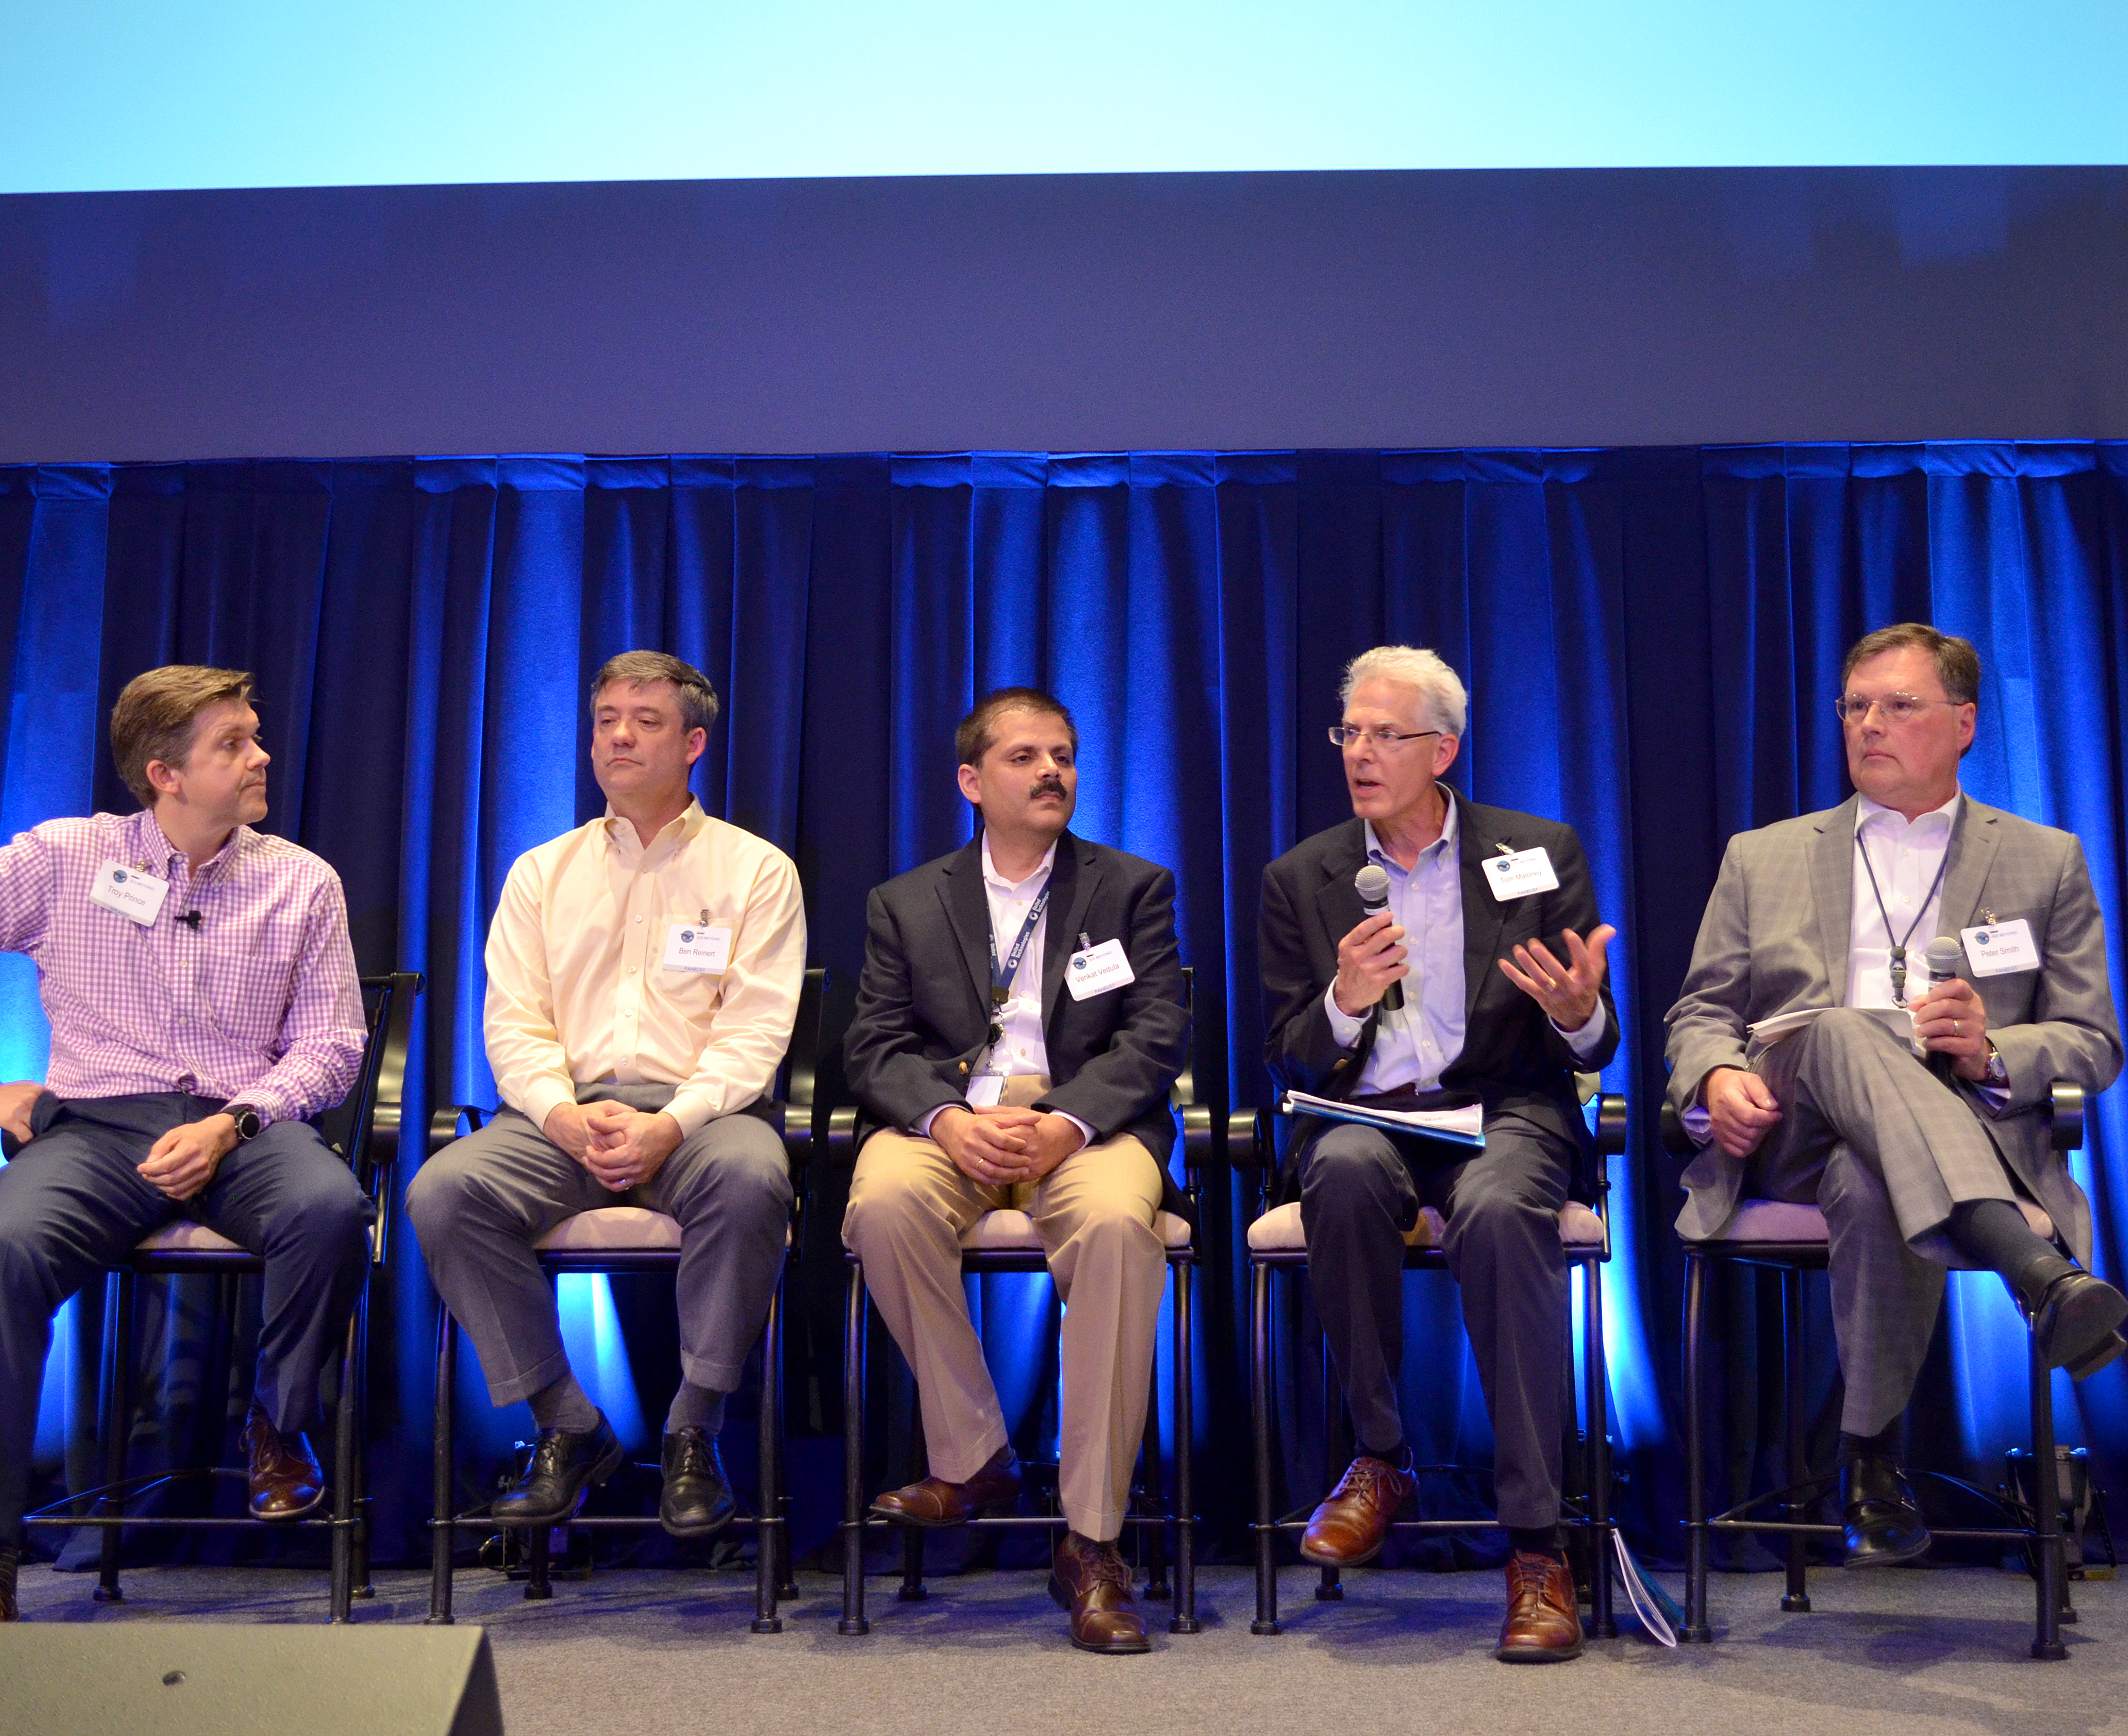 Technology Chief Touts CCAT Abilities in P&W Innovation Forum